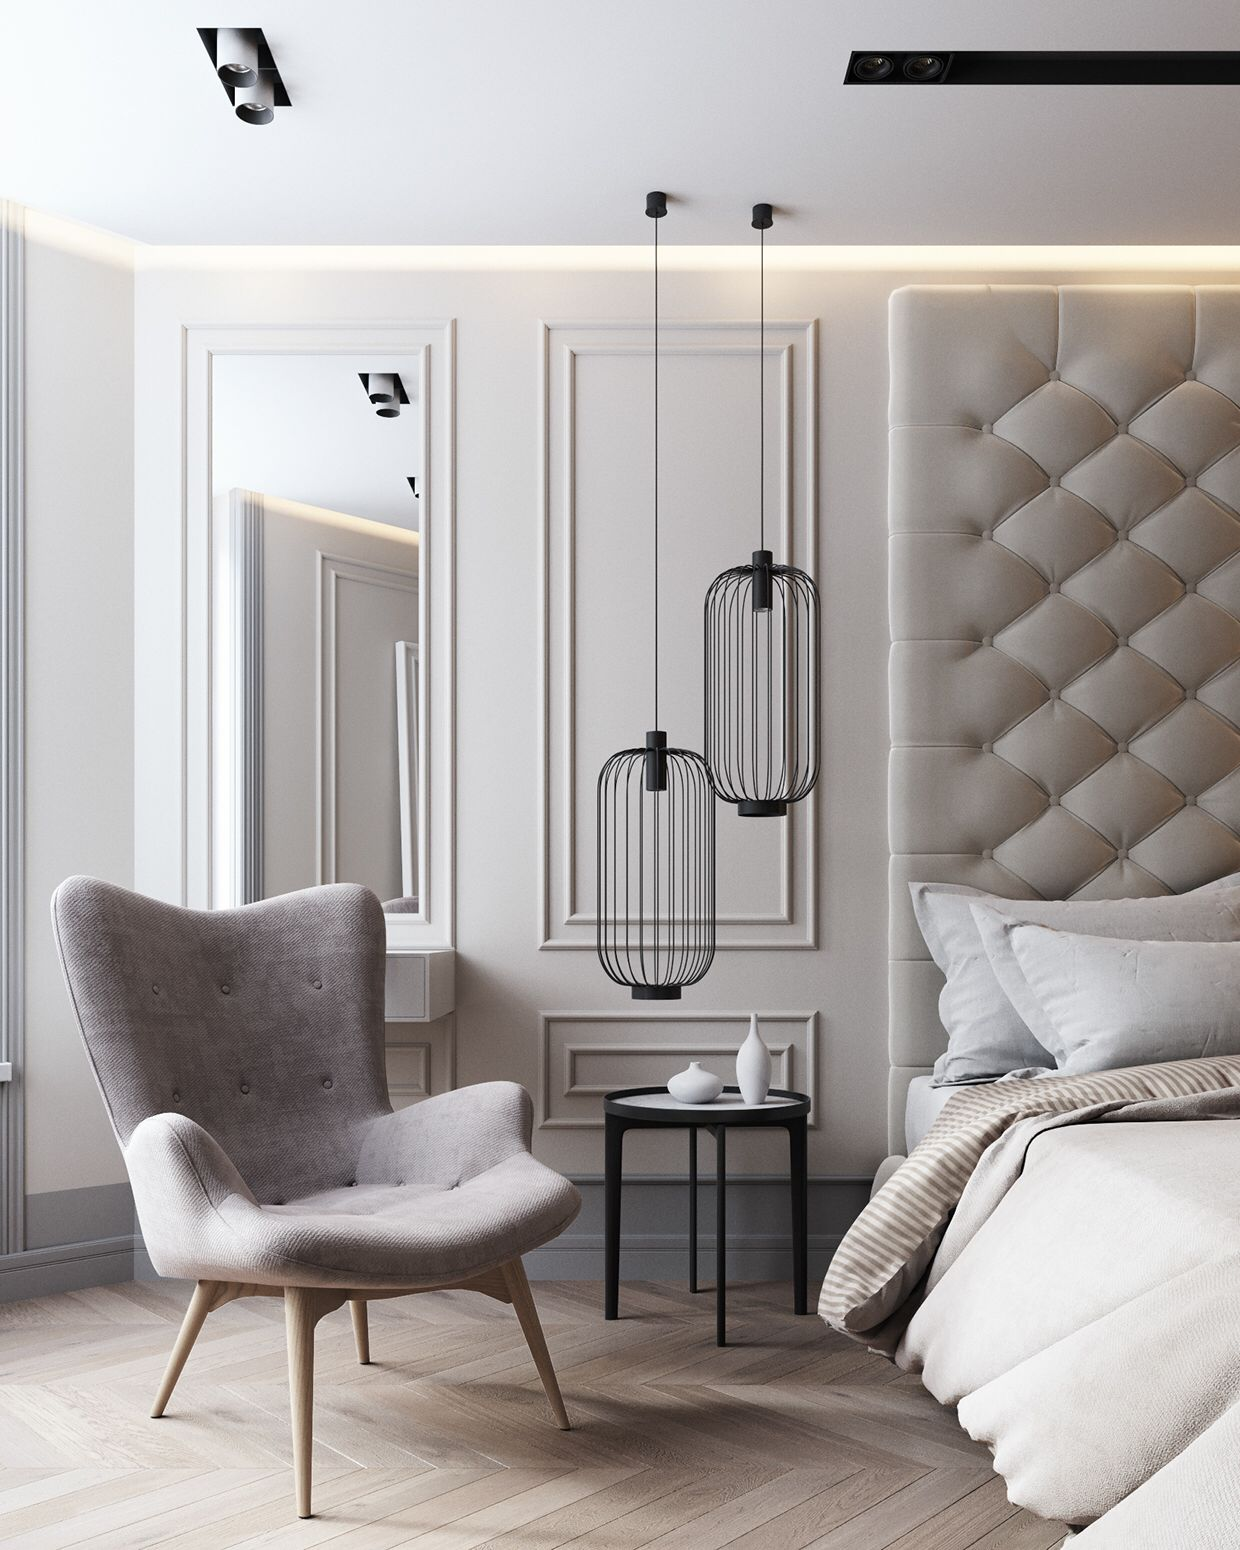 Wall Panelling Headboard Modern Bedroom Furniture Luxurious Bedrooms Interior Design Bedroom